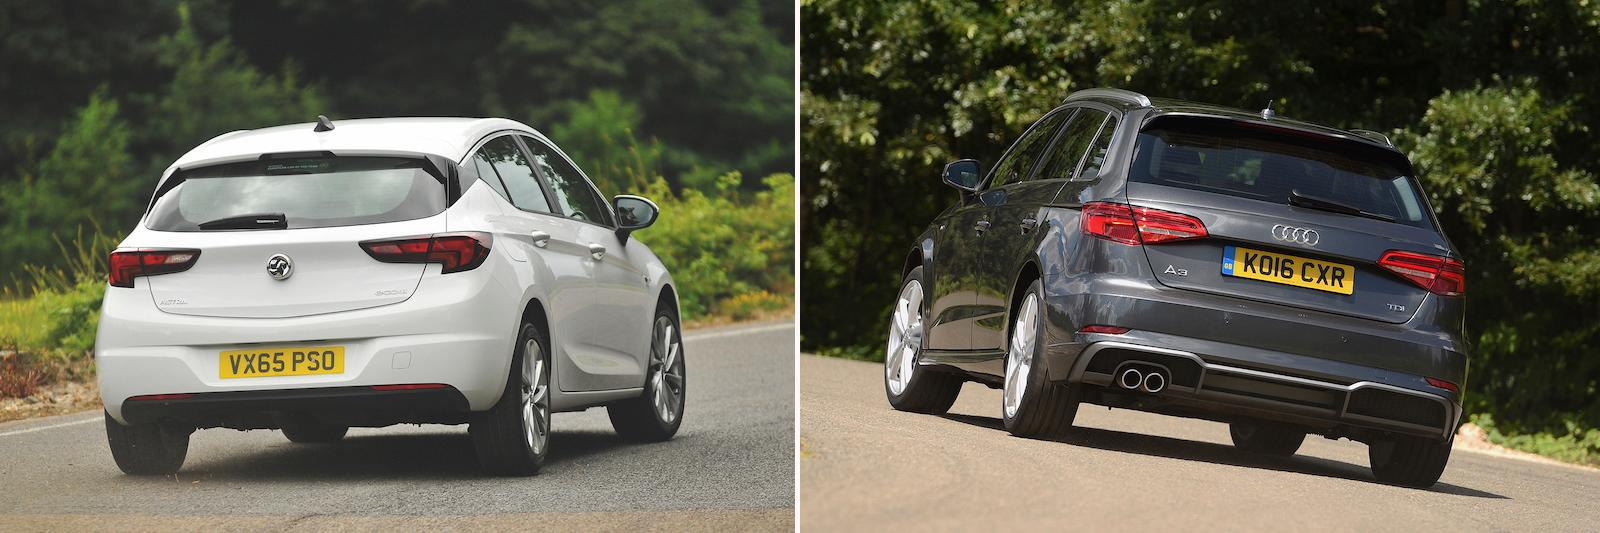 New Vauxhall Astra vs used Audi A3: which is best?